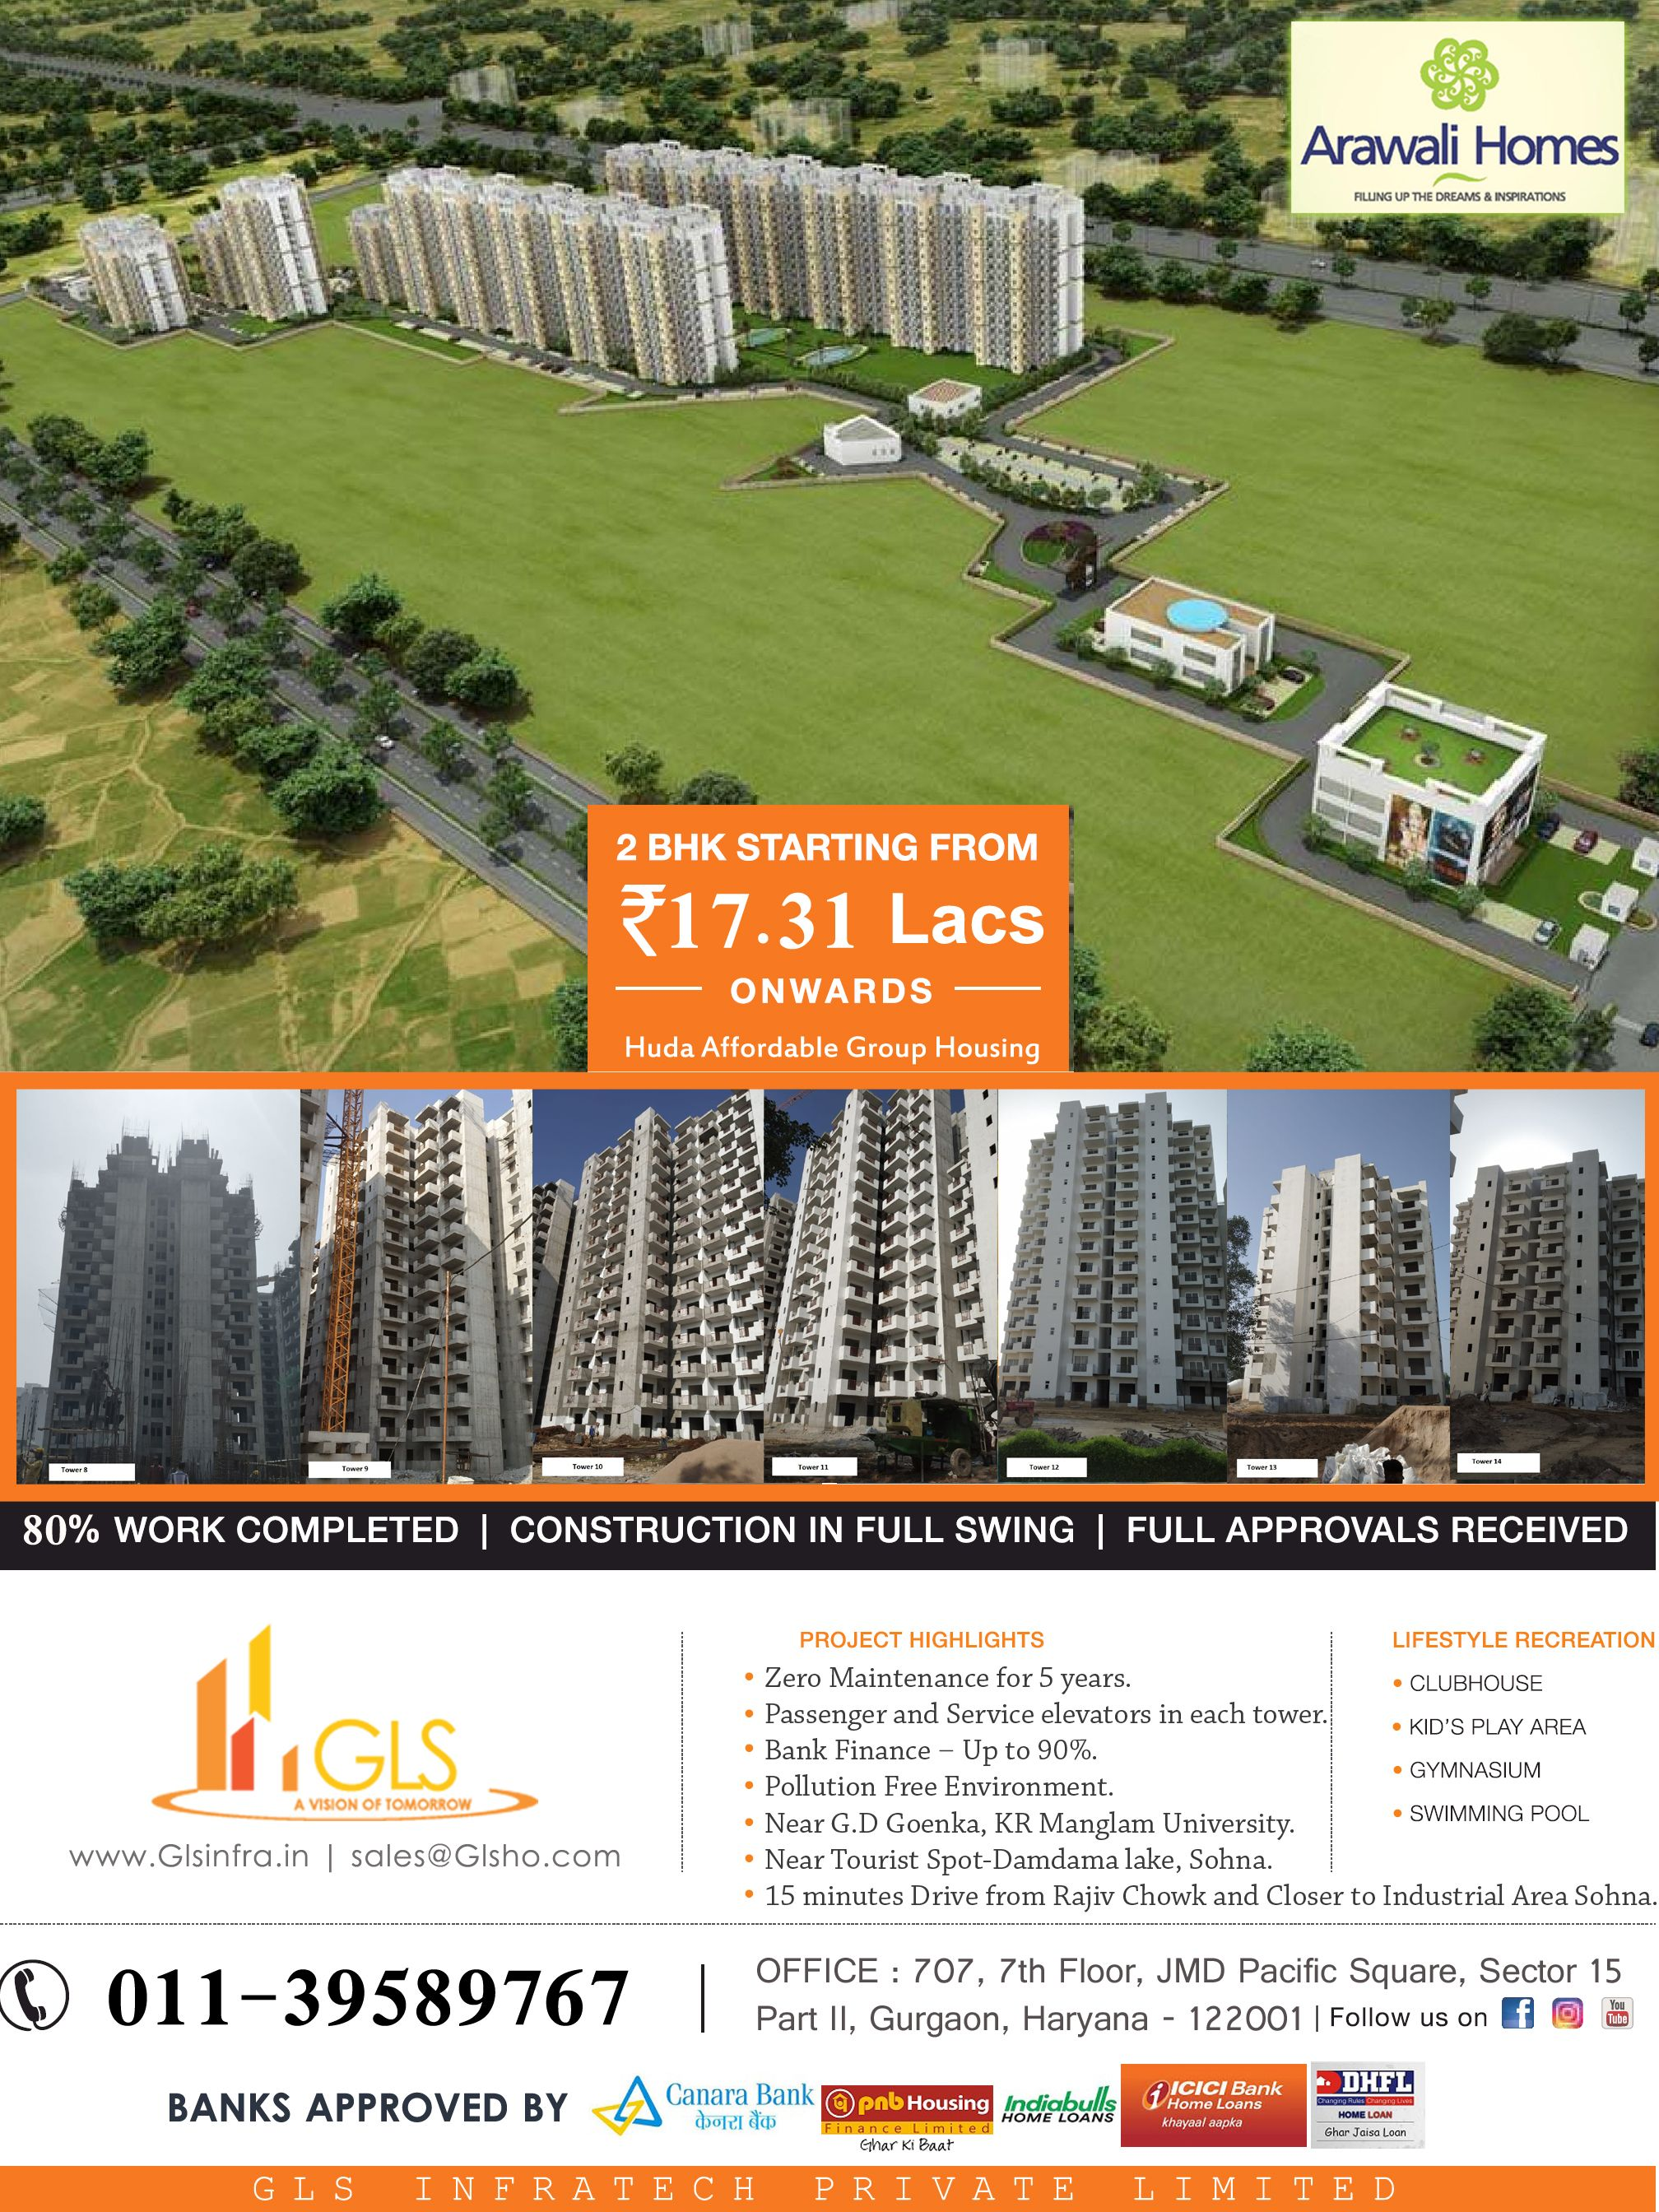 GLS Arawali Homes. Book your affordable homes